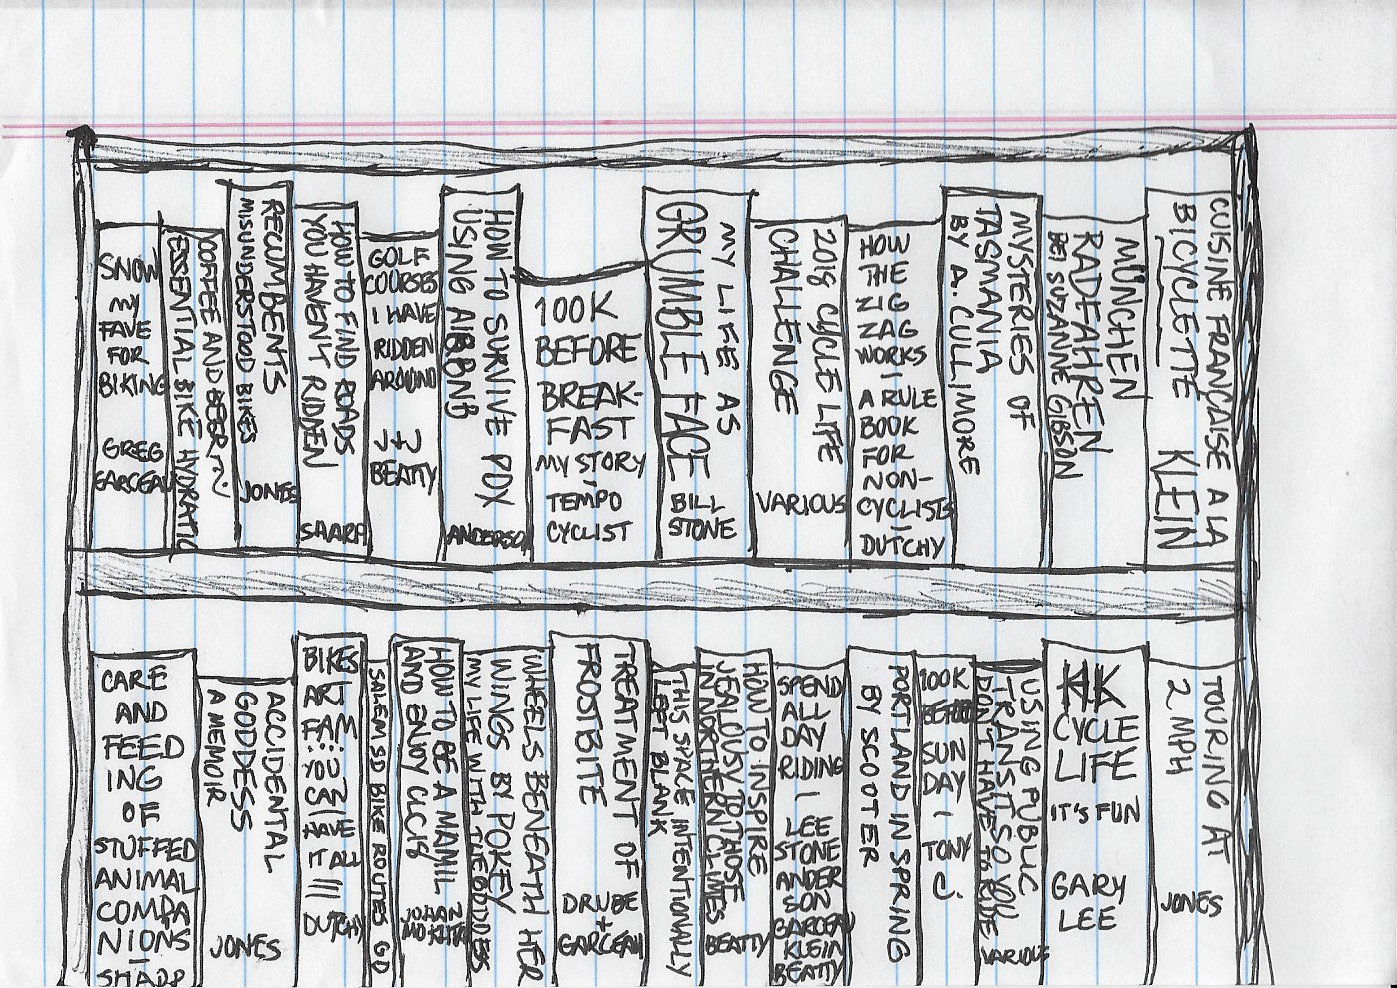 a drawing of books on a library bookshelf with made-up titles that are by people who participated in CLC18